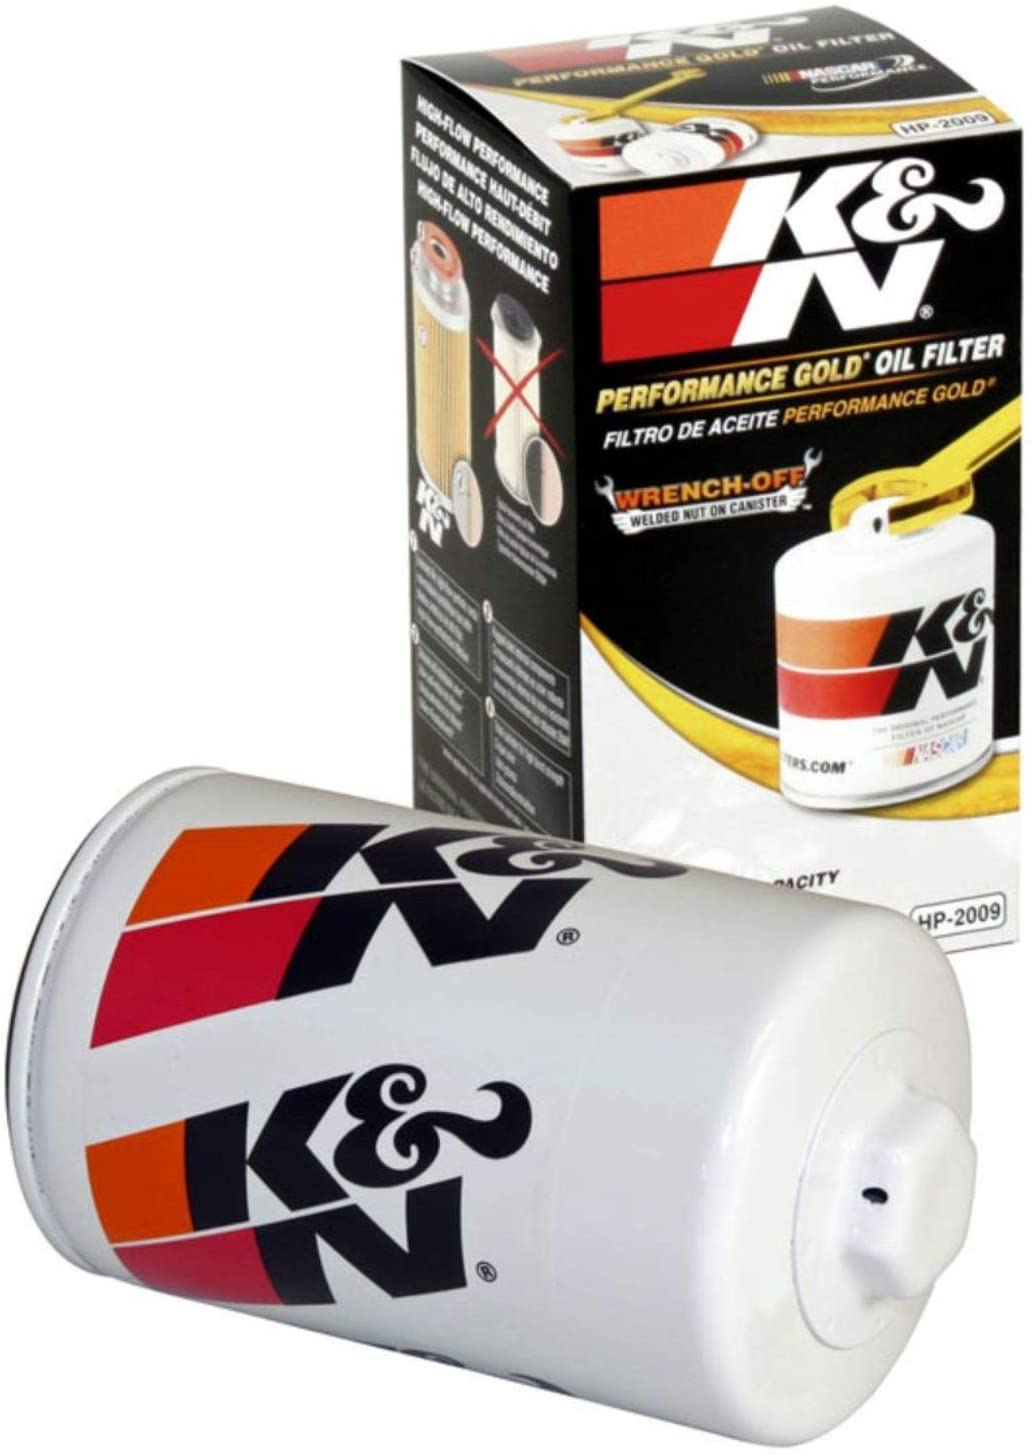 K&N Premium Oil Filter: Designed to Protect your Engine: Fits Select MAZDA/FORD/LINCOLN/DODGE Vehicle Models (See Product Description for Full List of Compatible Vehicles), HP-2009